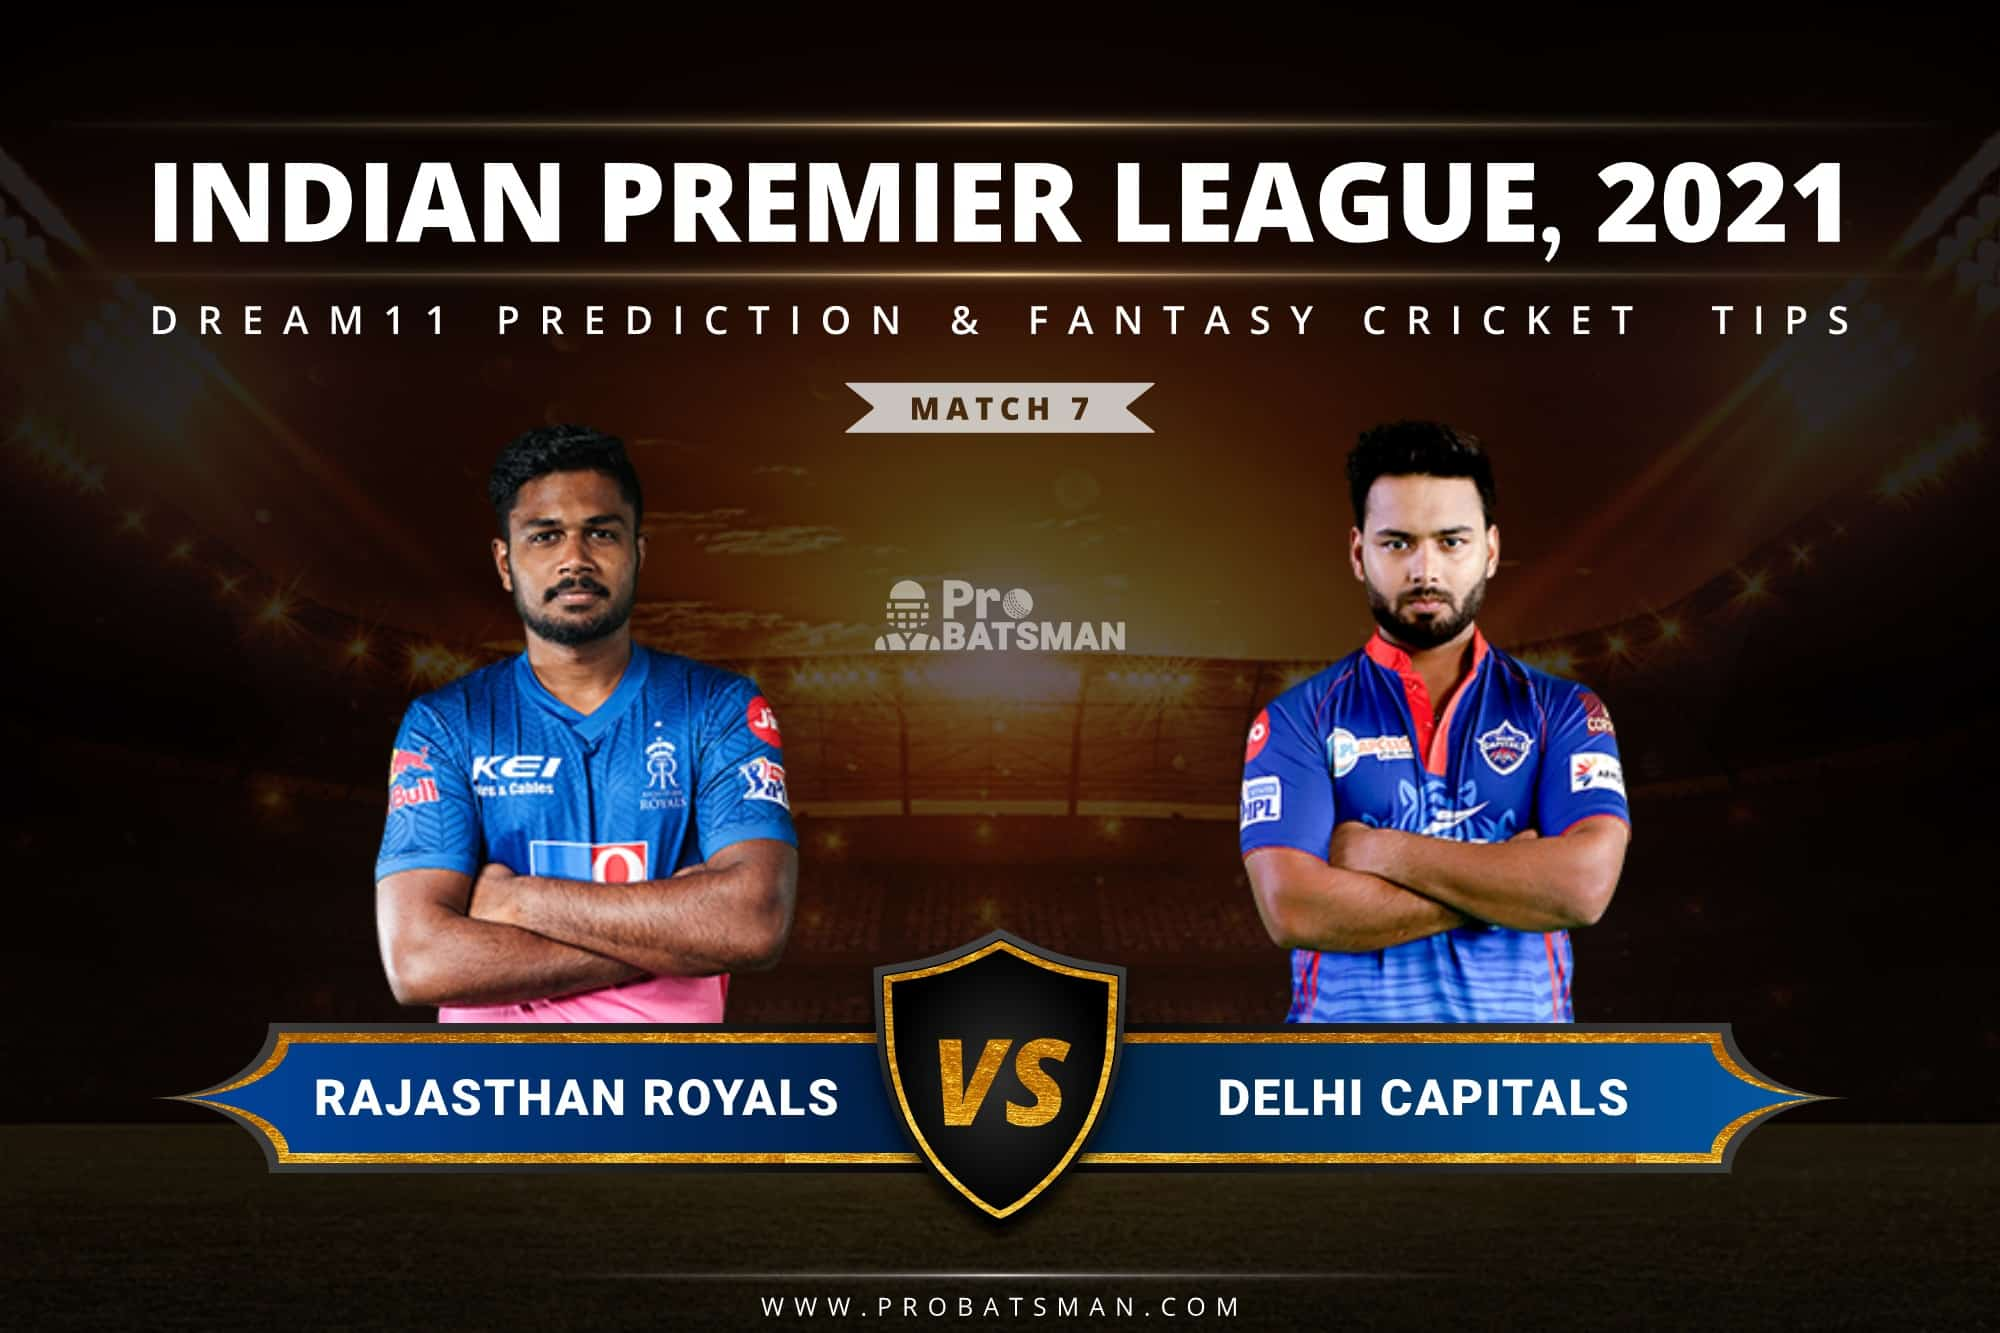 RR vs DC Dream11 Prediction: Fantasy Cricket Tips, Playing XI, Pitch Report, Stats & Injury Updates of Match 7, IPL 2021